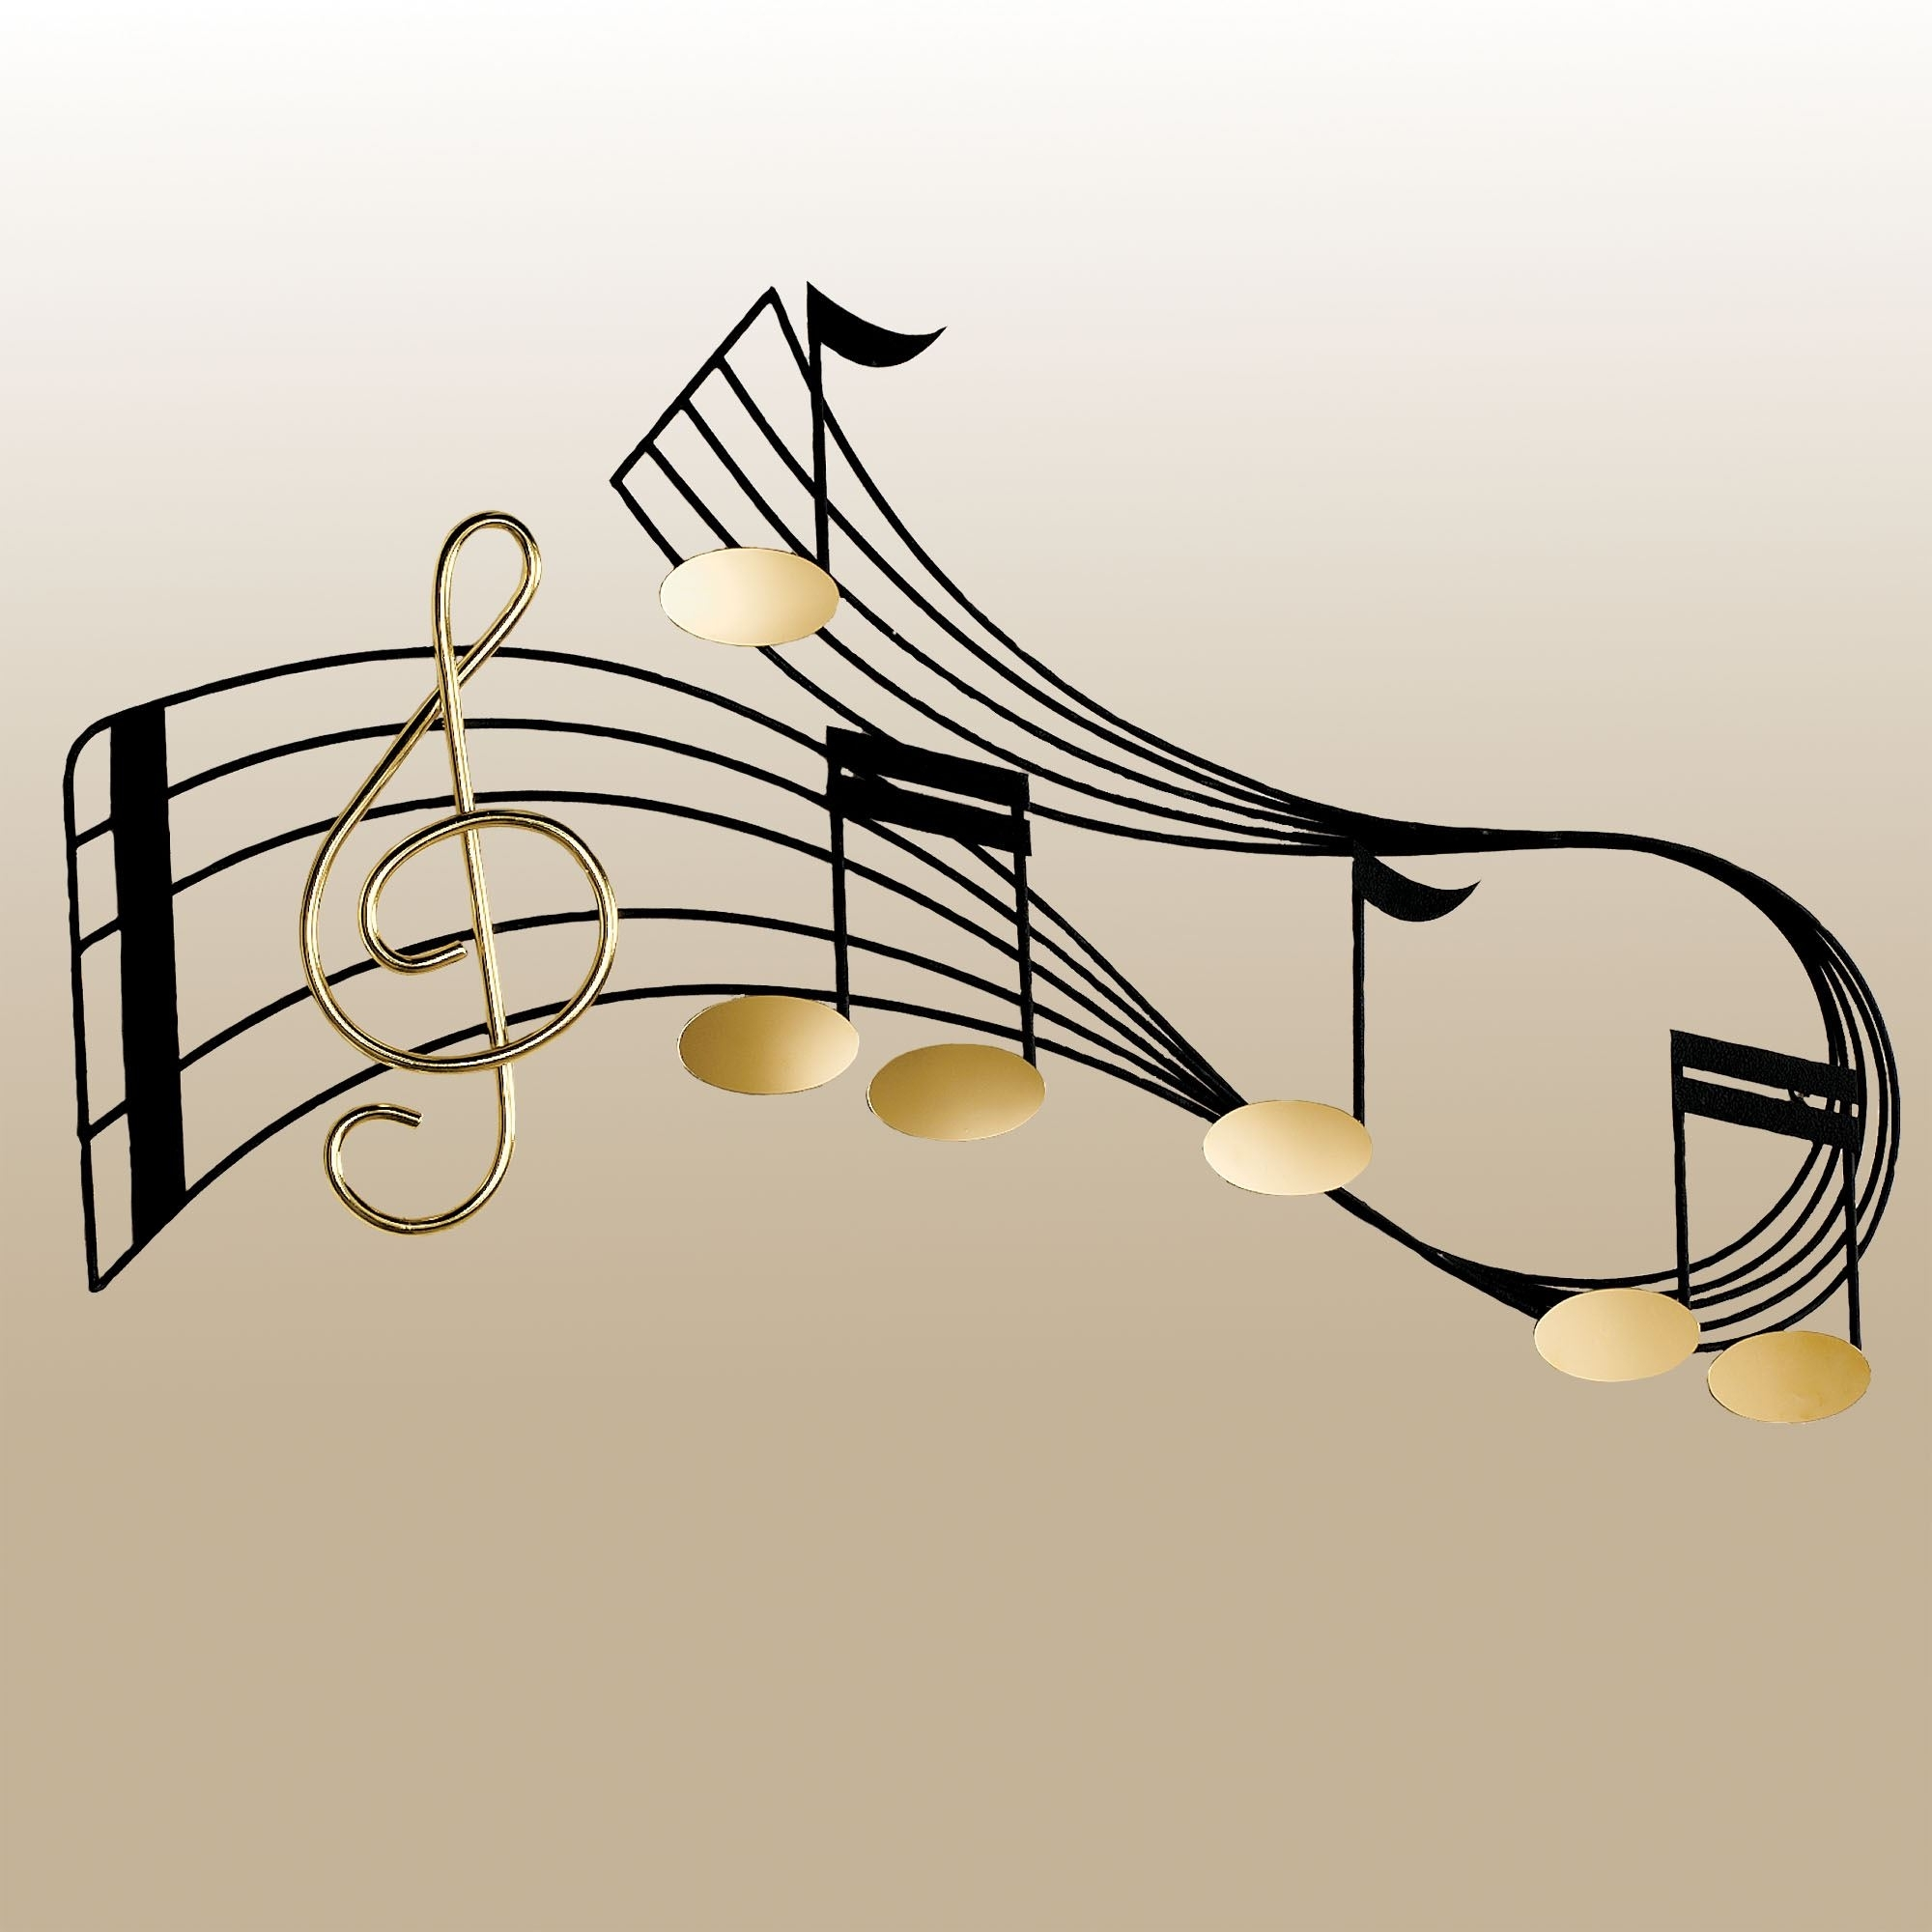 Rhythm Music Staff Metal Wall Sculpture For 2018 Music Wall Art (Gallery 9 of 15)